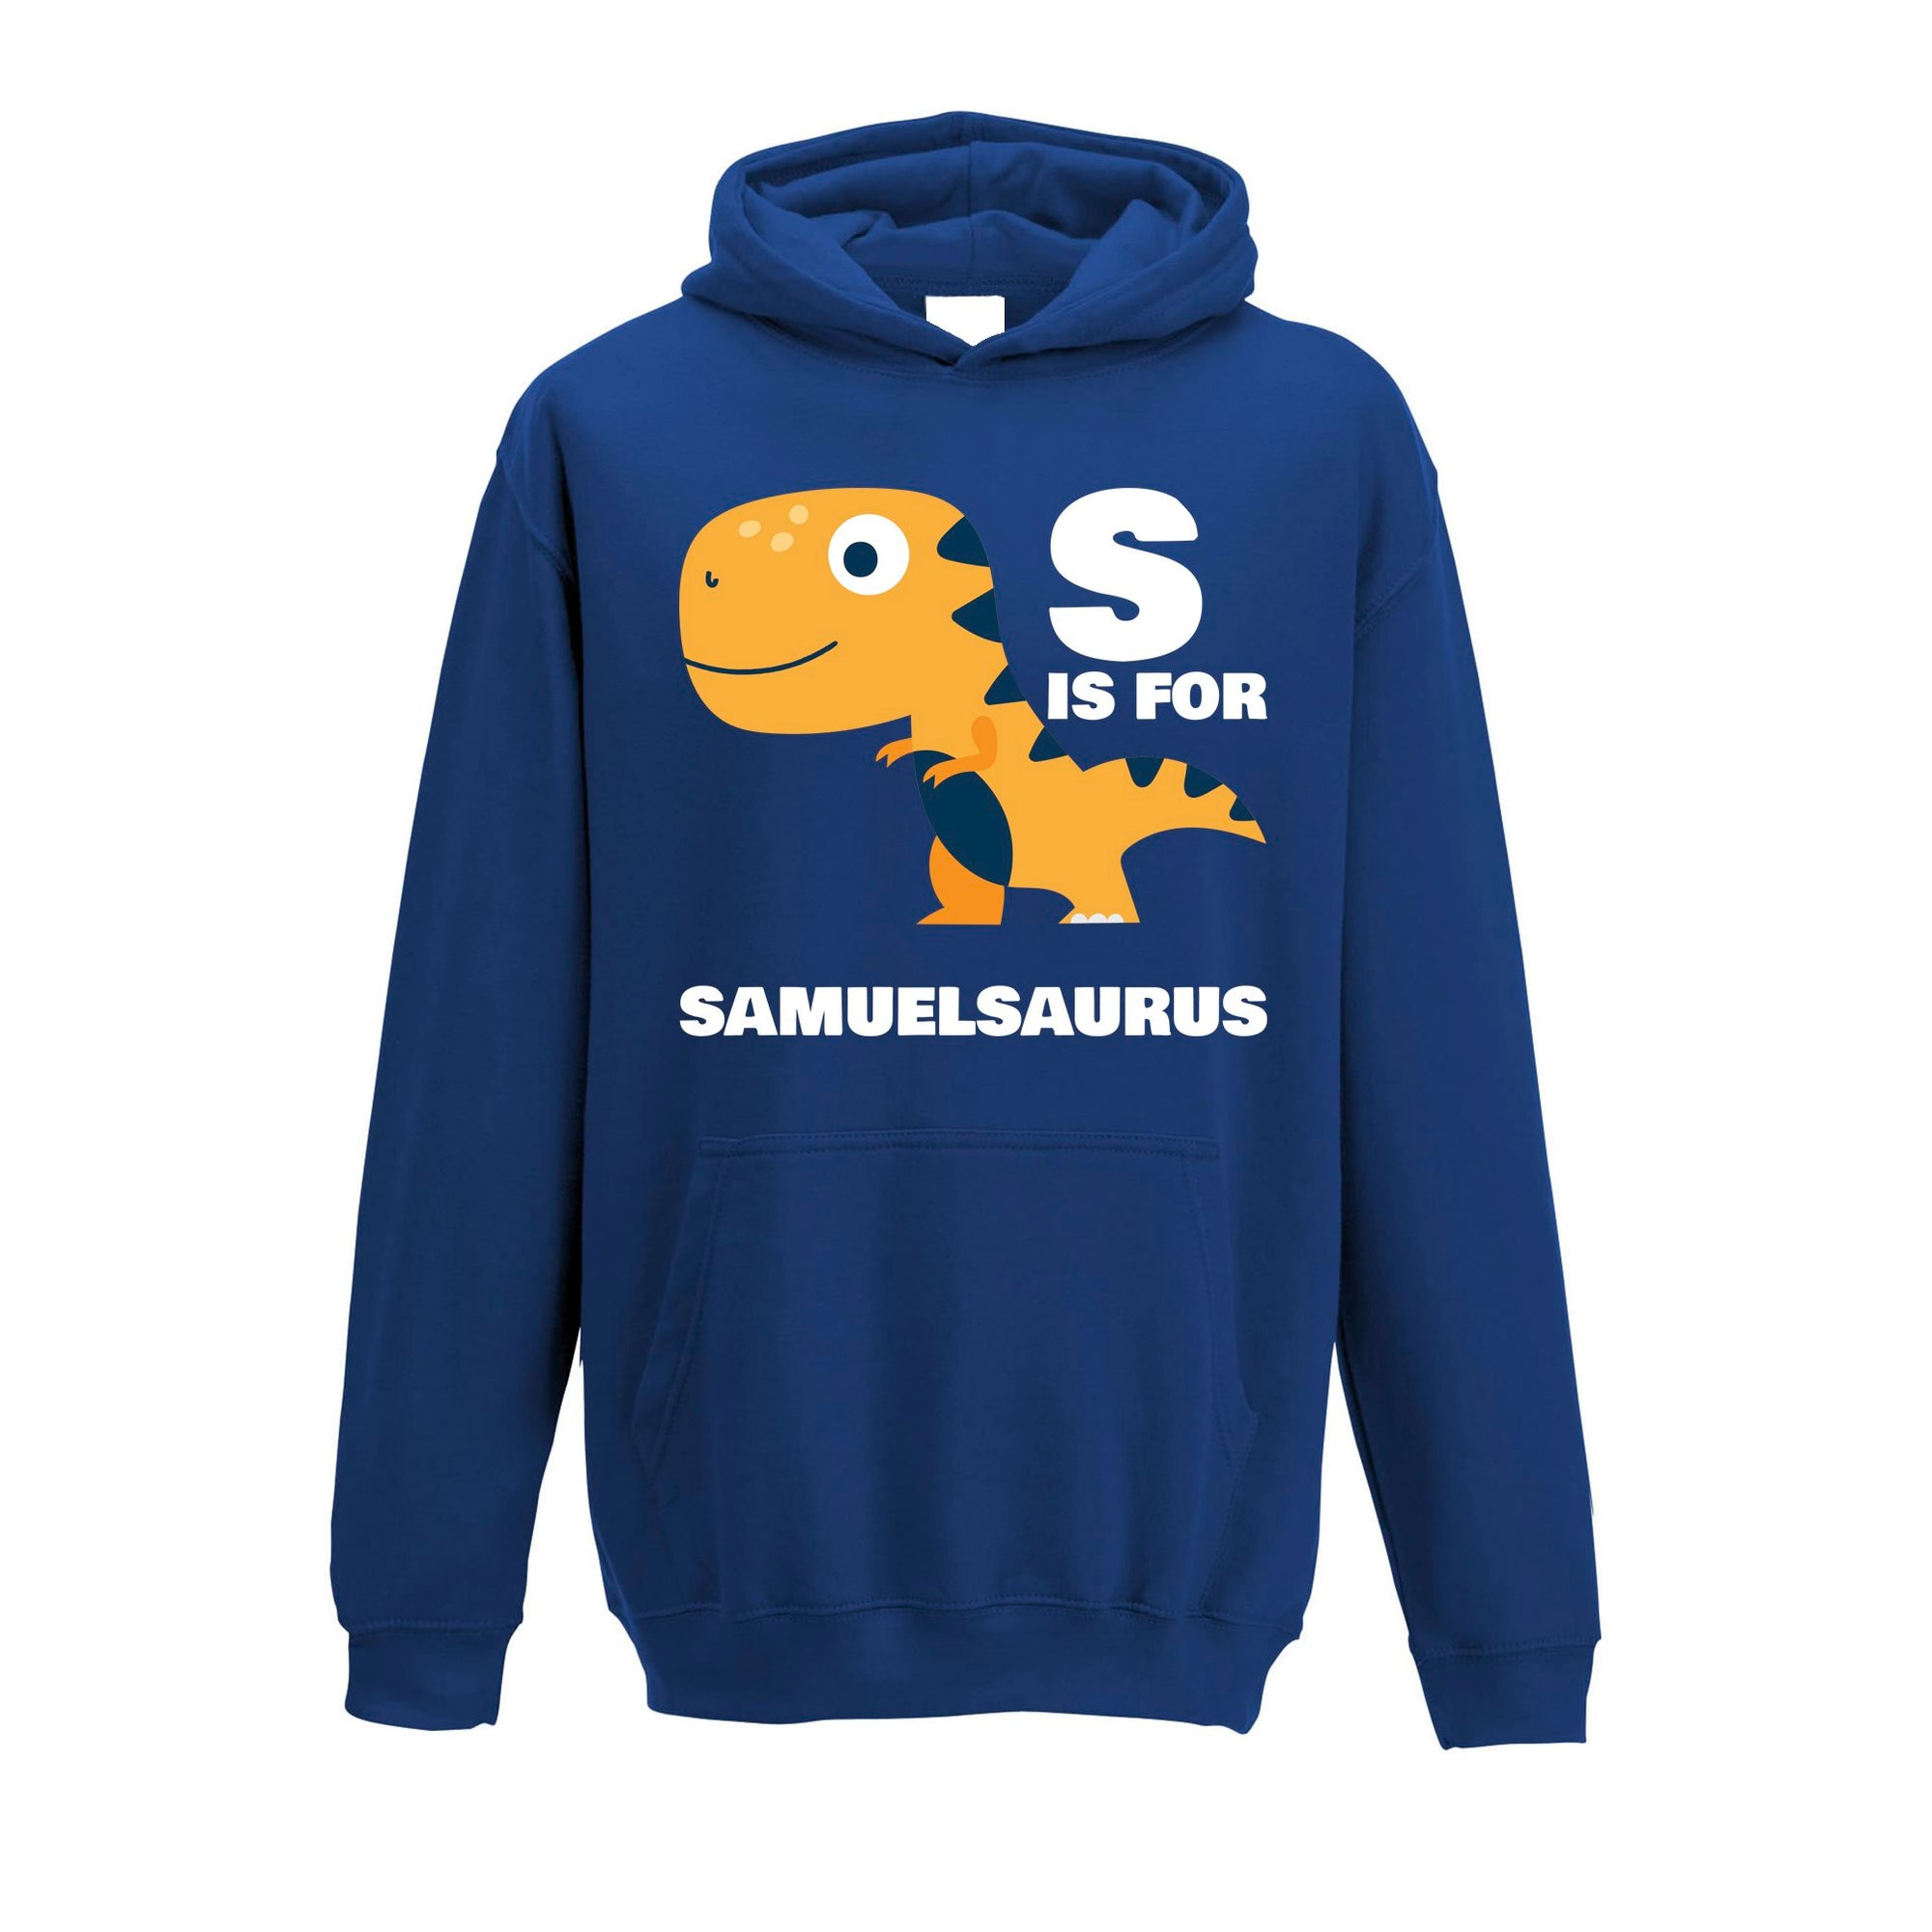 Dinosaur Kids Hoodie Samuel Saurus Birth Name Childs